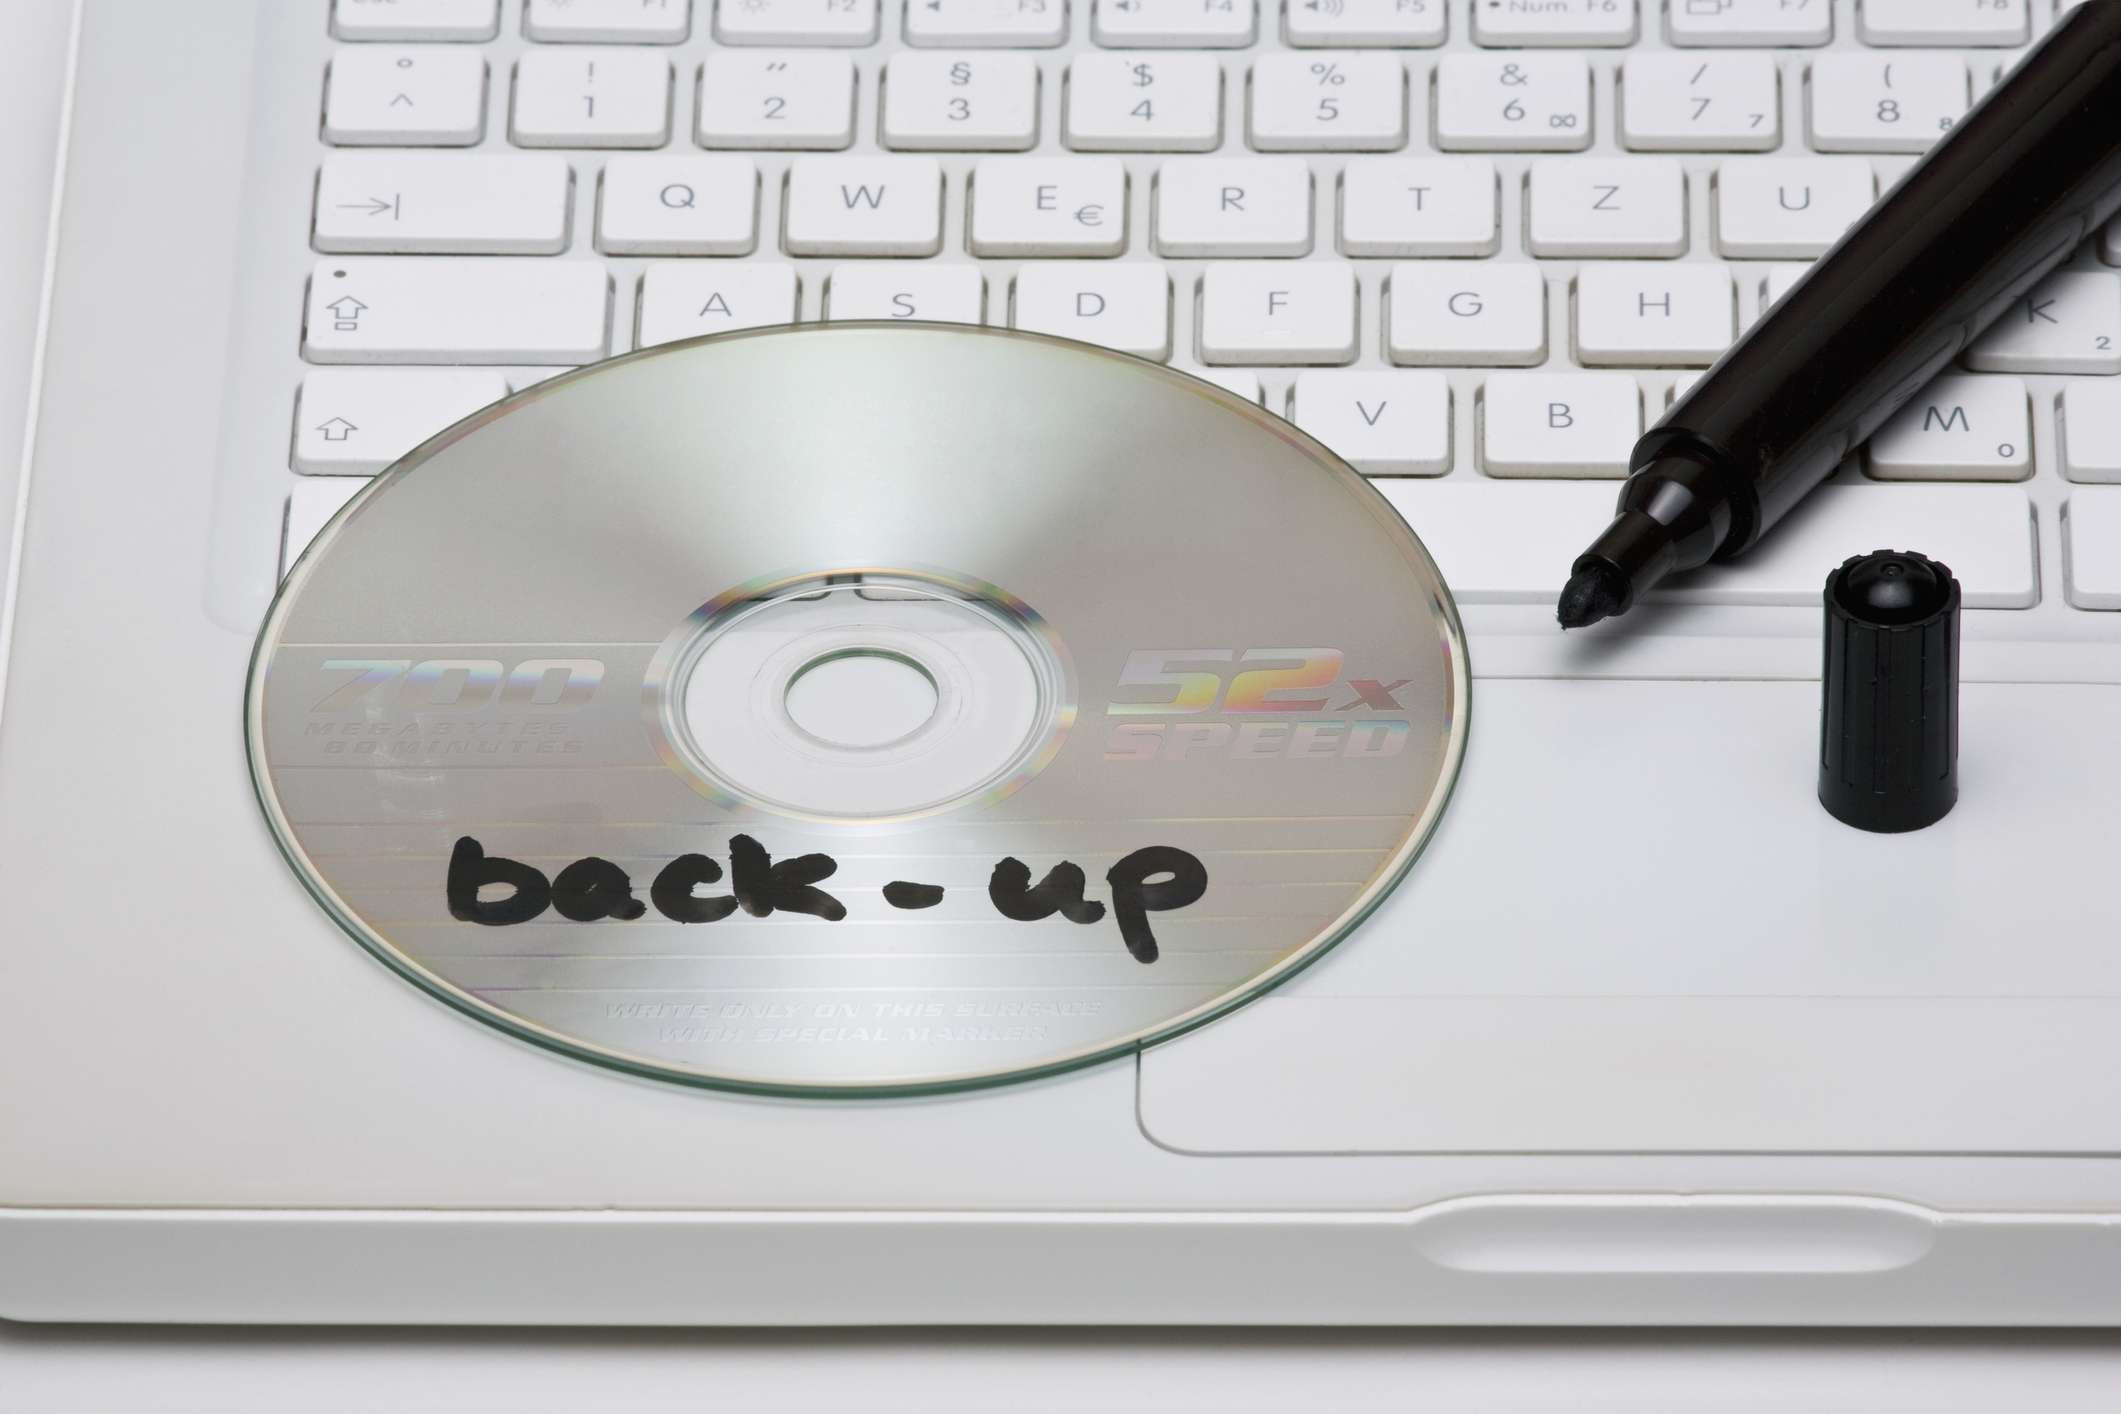 Detail of a back-up DVD disc and a marker on a laptop